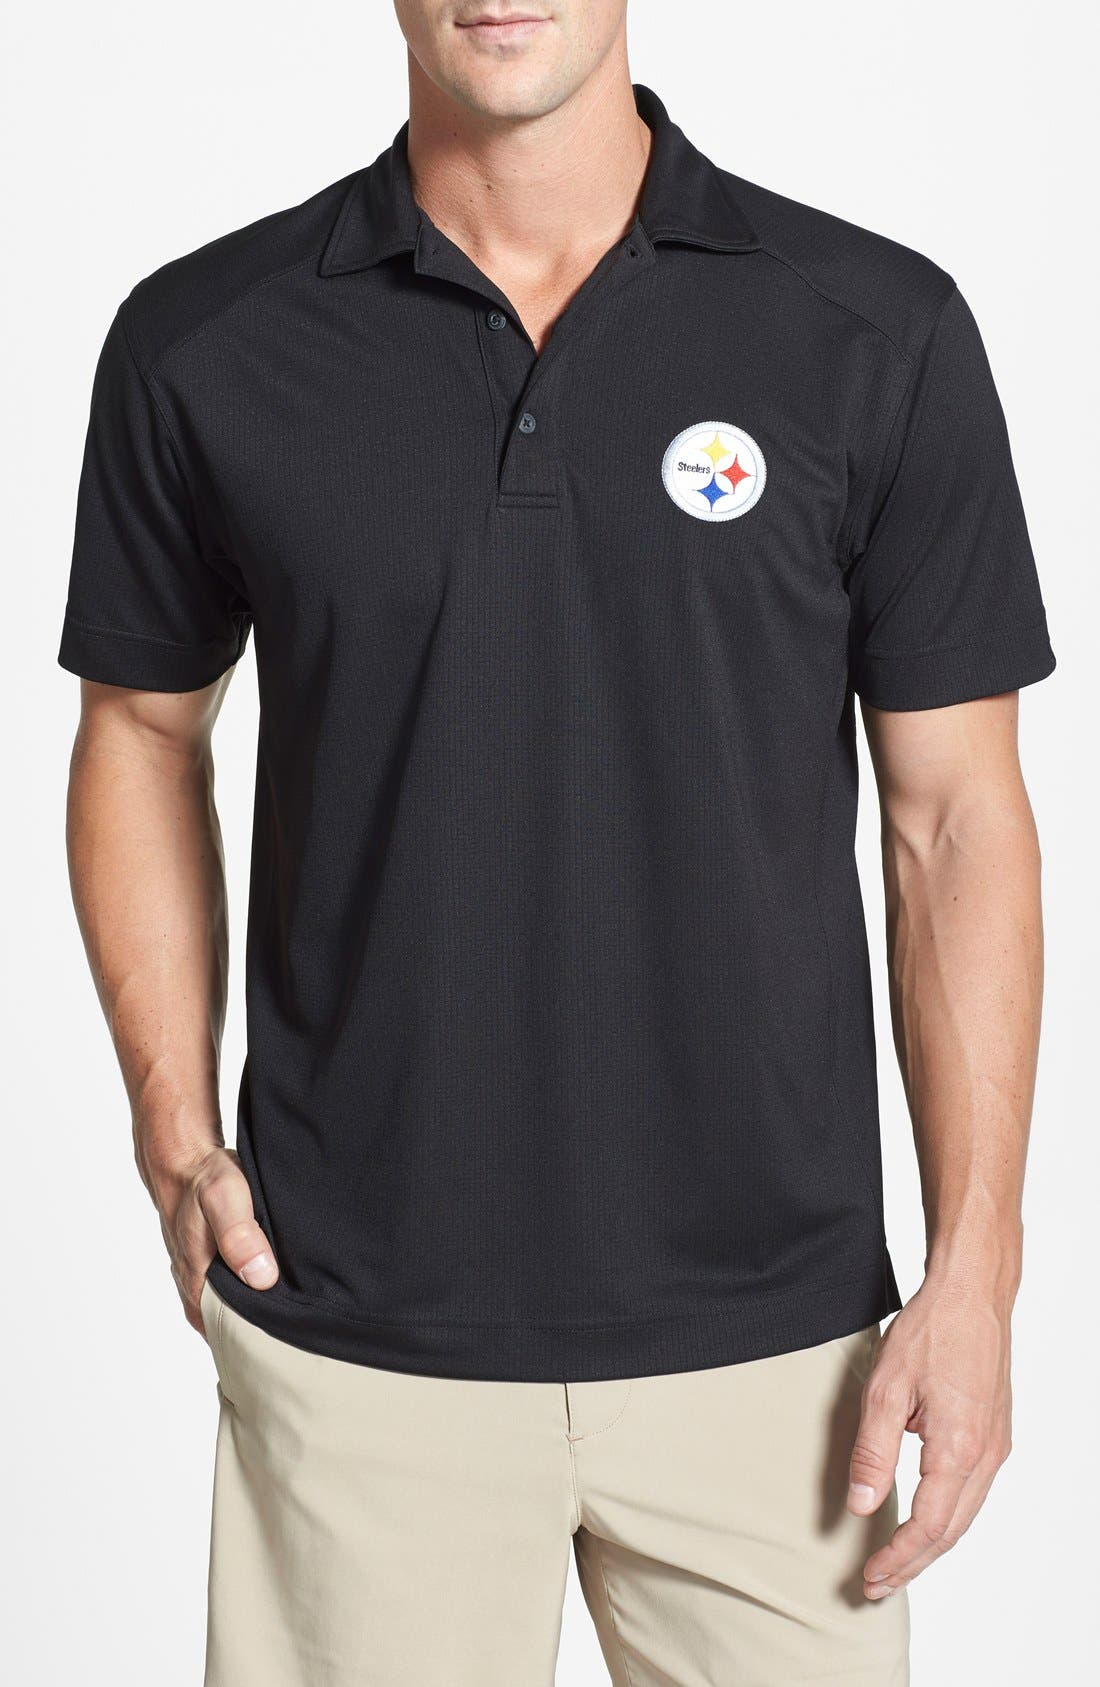 Cutter & Buck Pittsburgh Steelers - Genre DryTec Moisture Wicking Polo